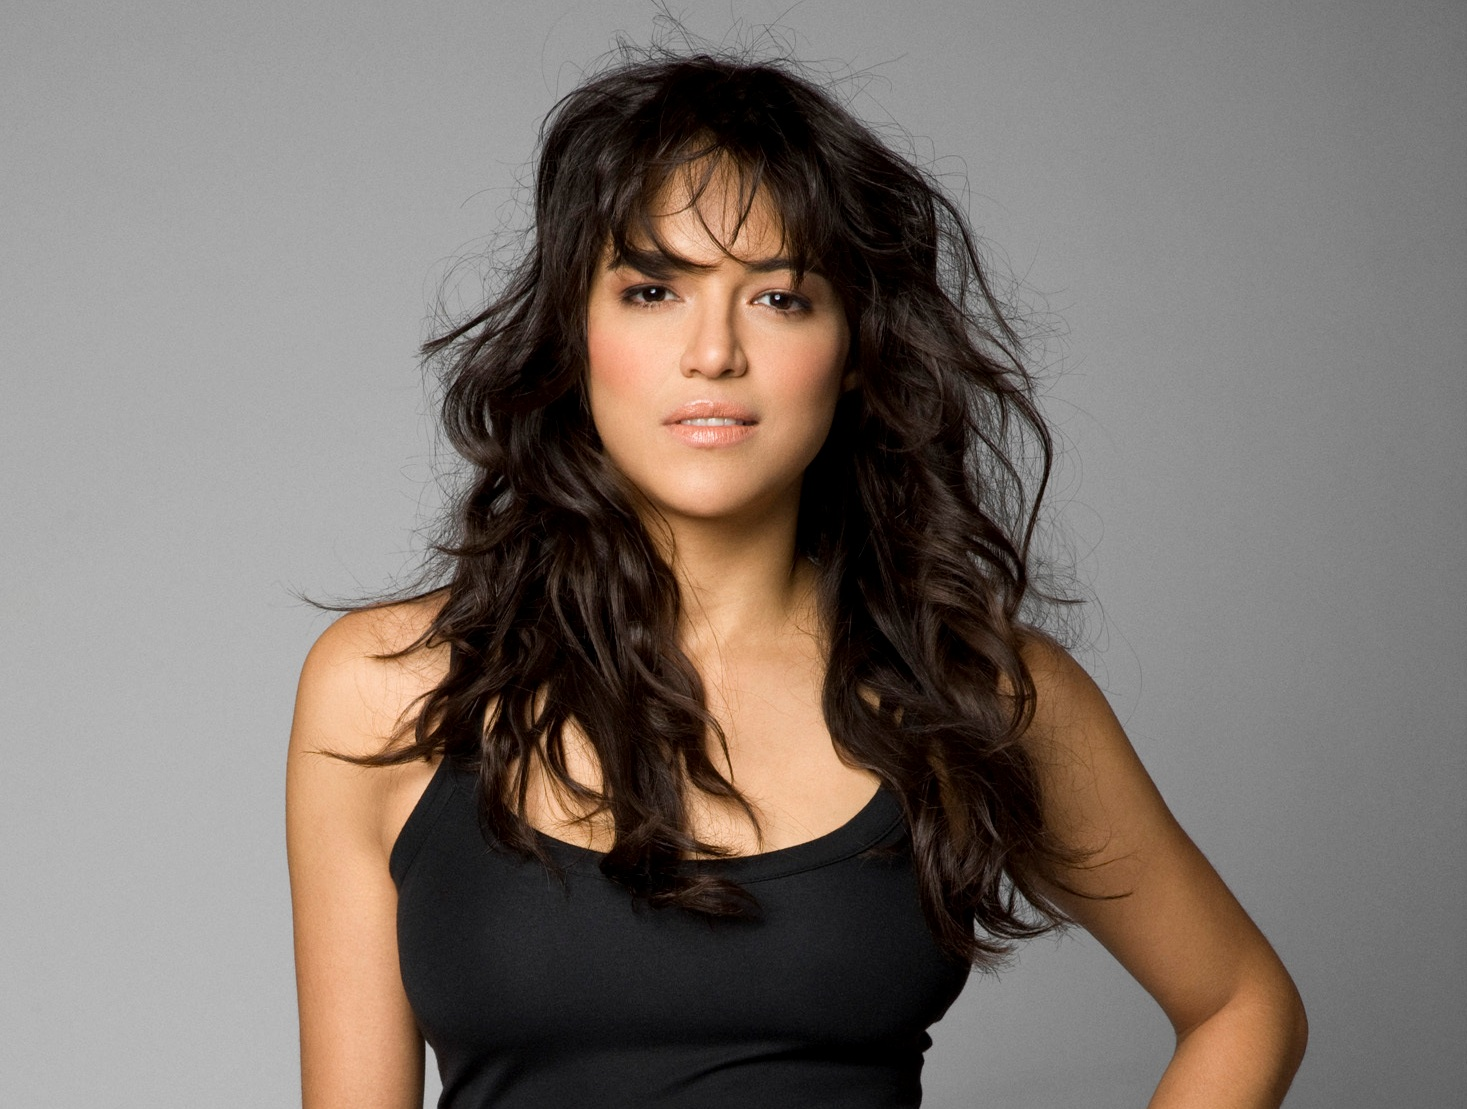 Actresses HD Wallpapers: Michelle Rodriguez hd wallpapers